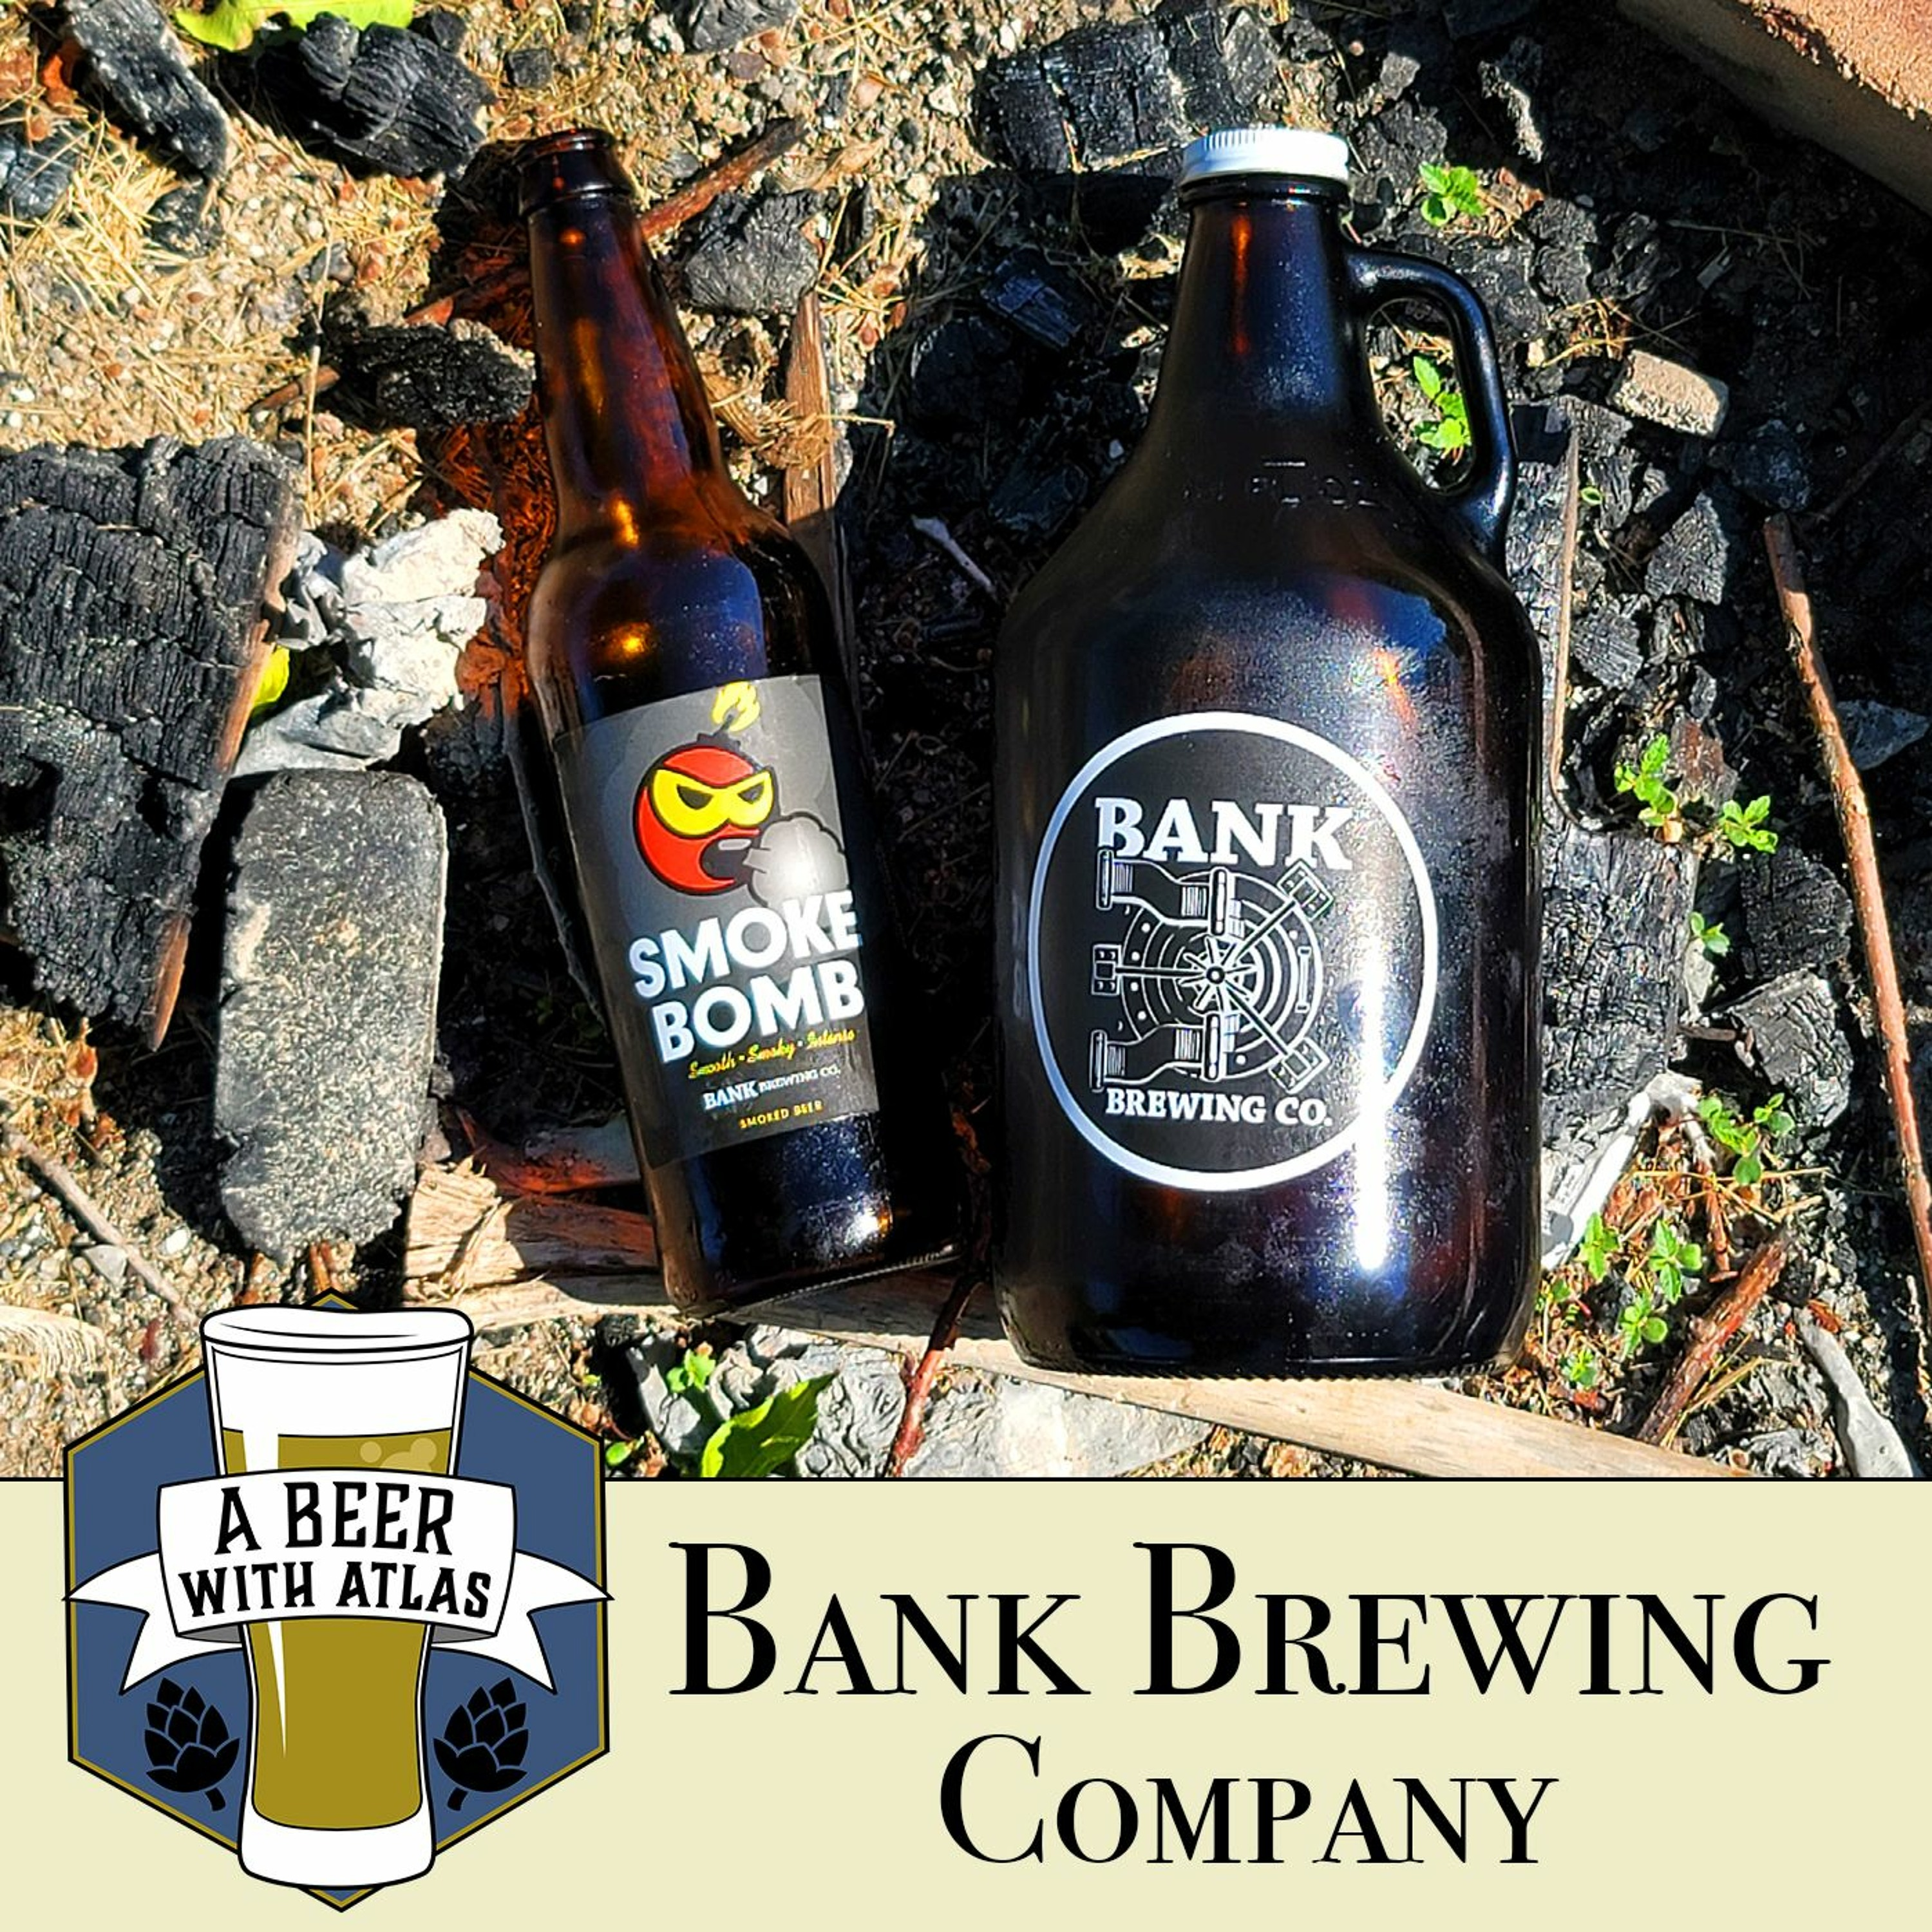 Minnesota's Bank Brewing Company - A Beer with Atlas 145 - a travel nursing podcast